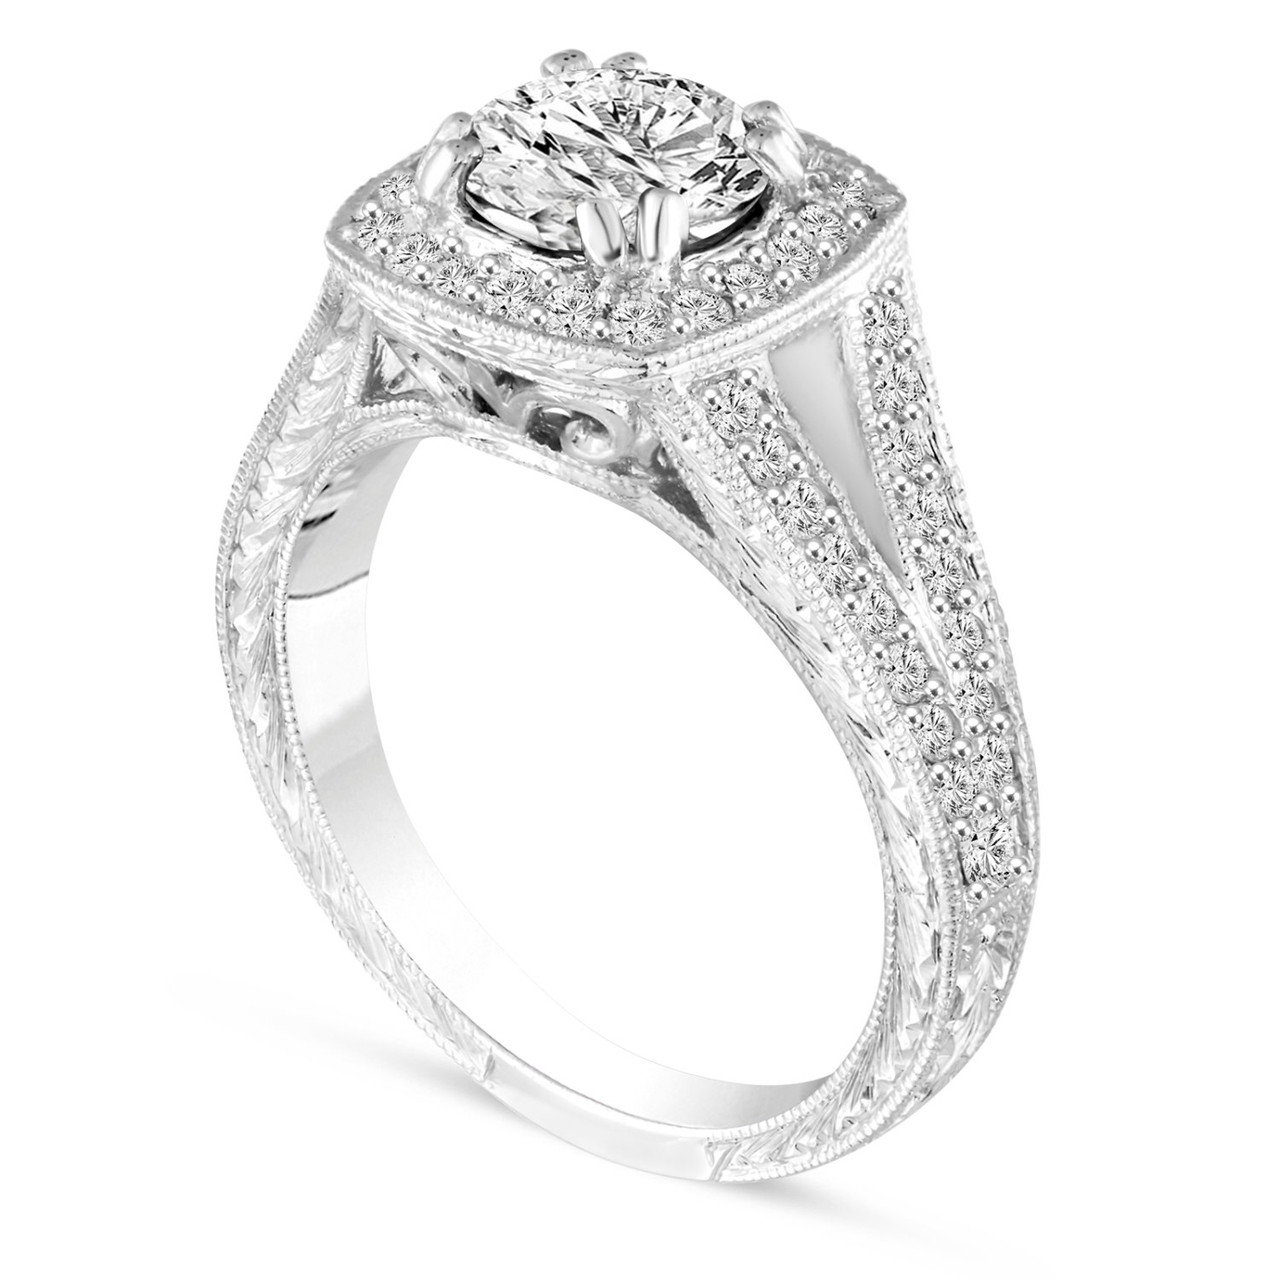 1.56 Carat Unique Diamond Engagement Ring, Platinum